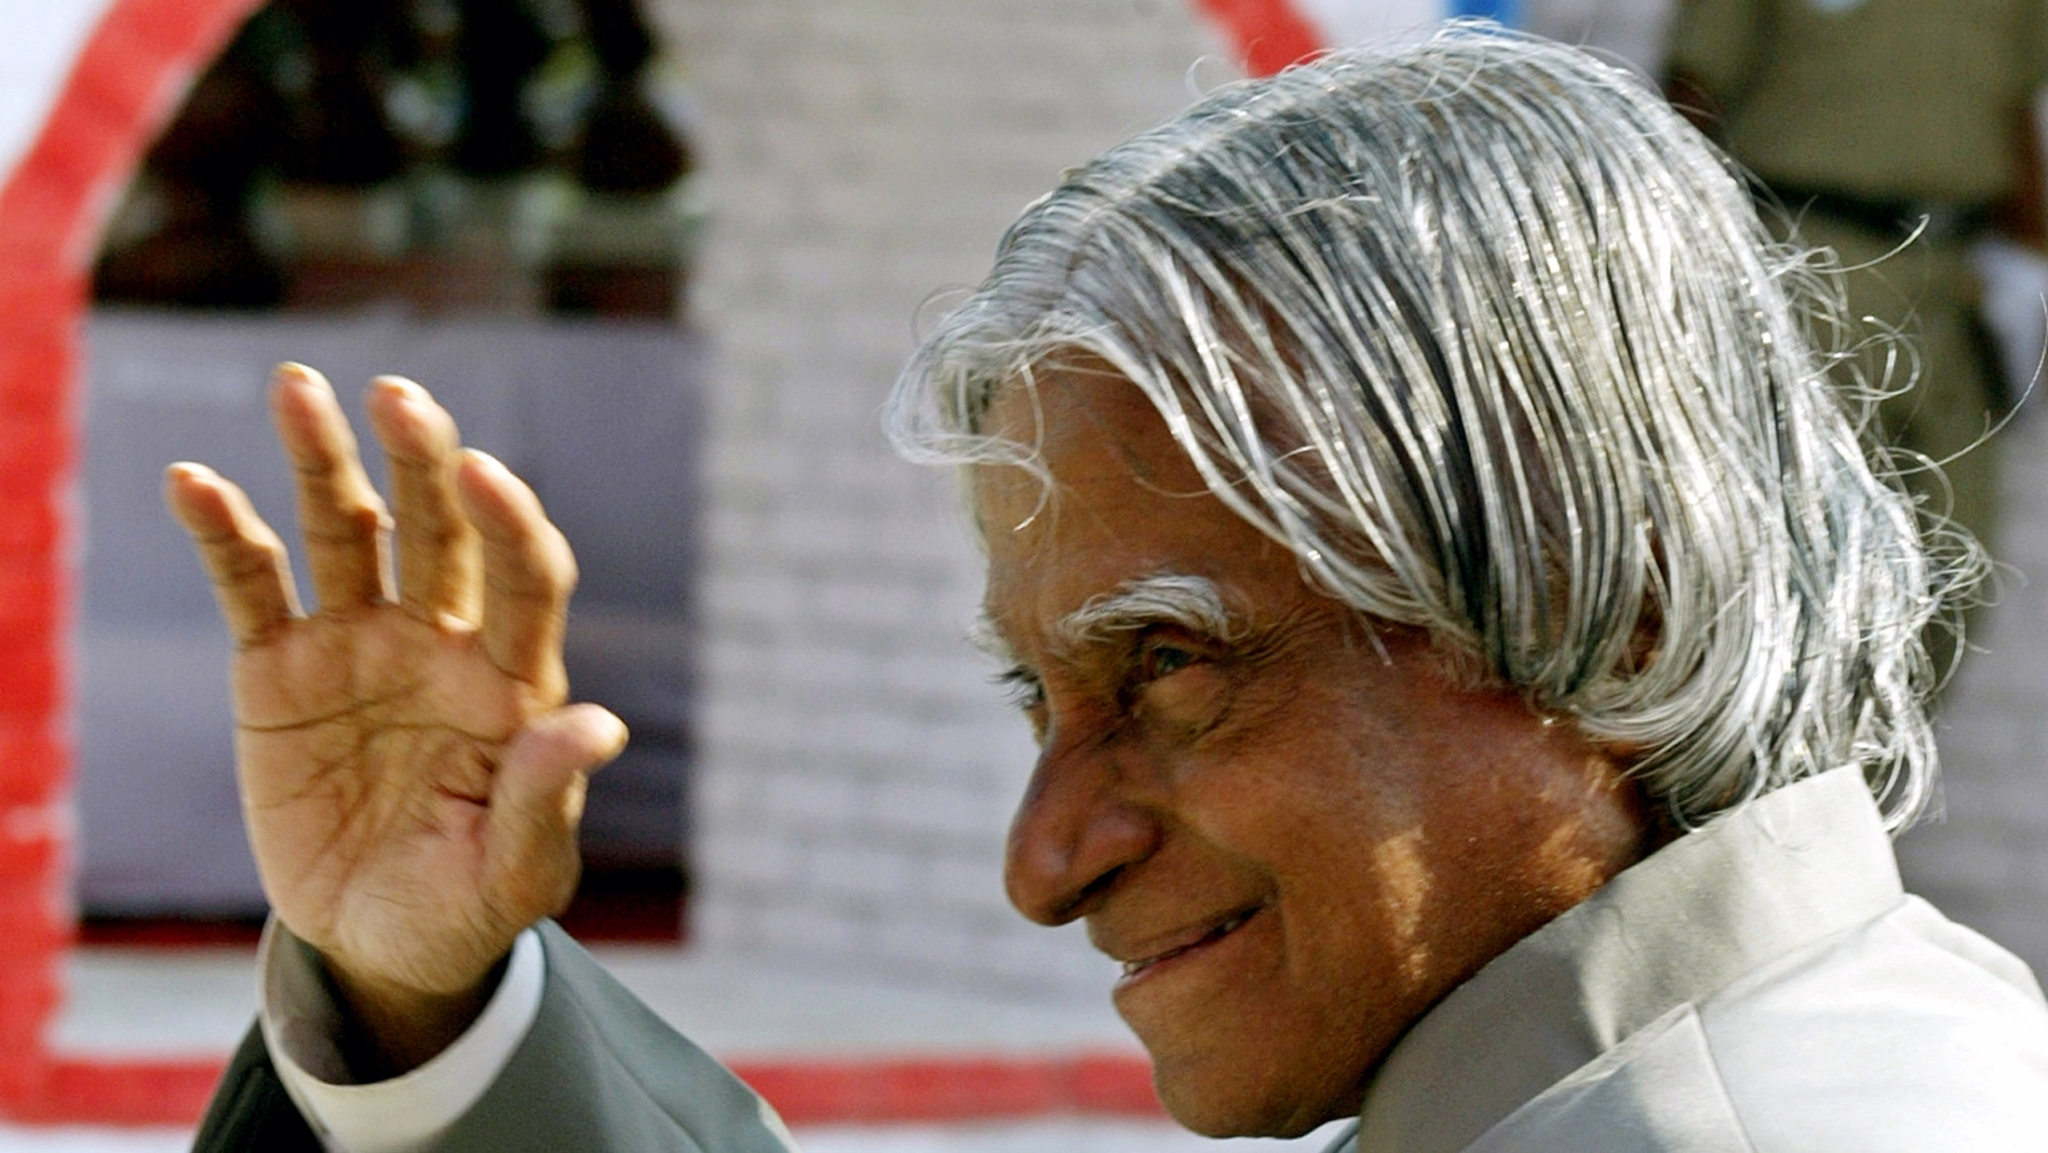 """dr apj abdul kalam azad Dr a p j abdul kalam iit techfest inaugural speech hyderabad 